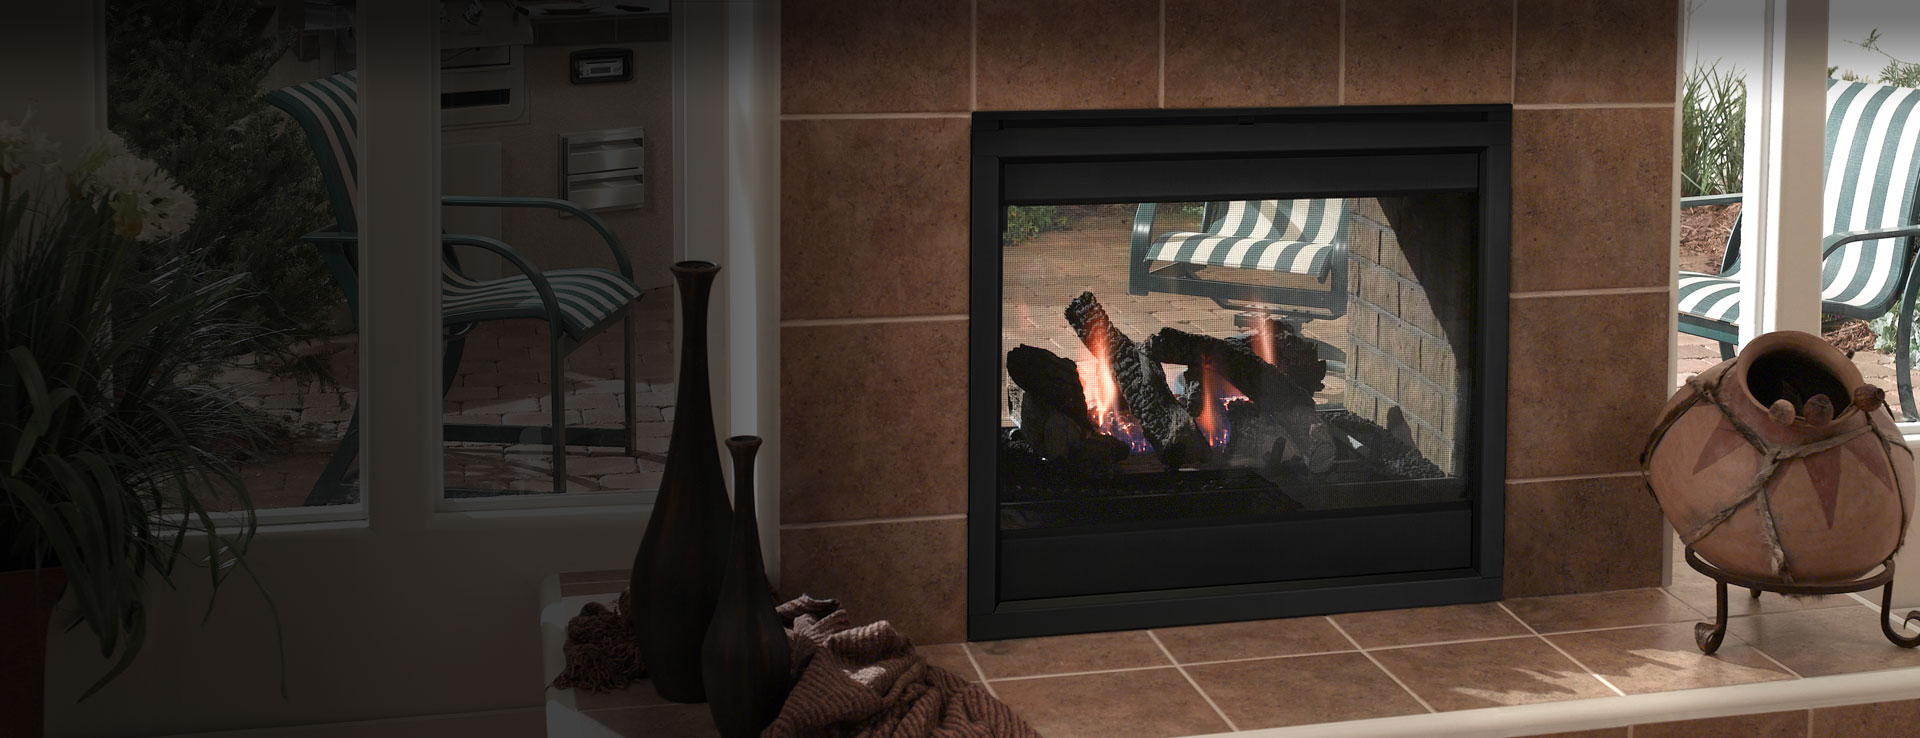 <p>Twilight II Indoor/Outdoor Gas Fireplace</p>